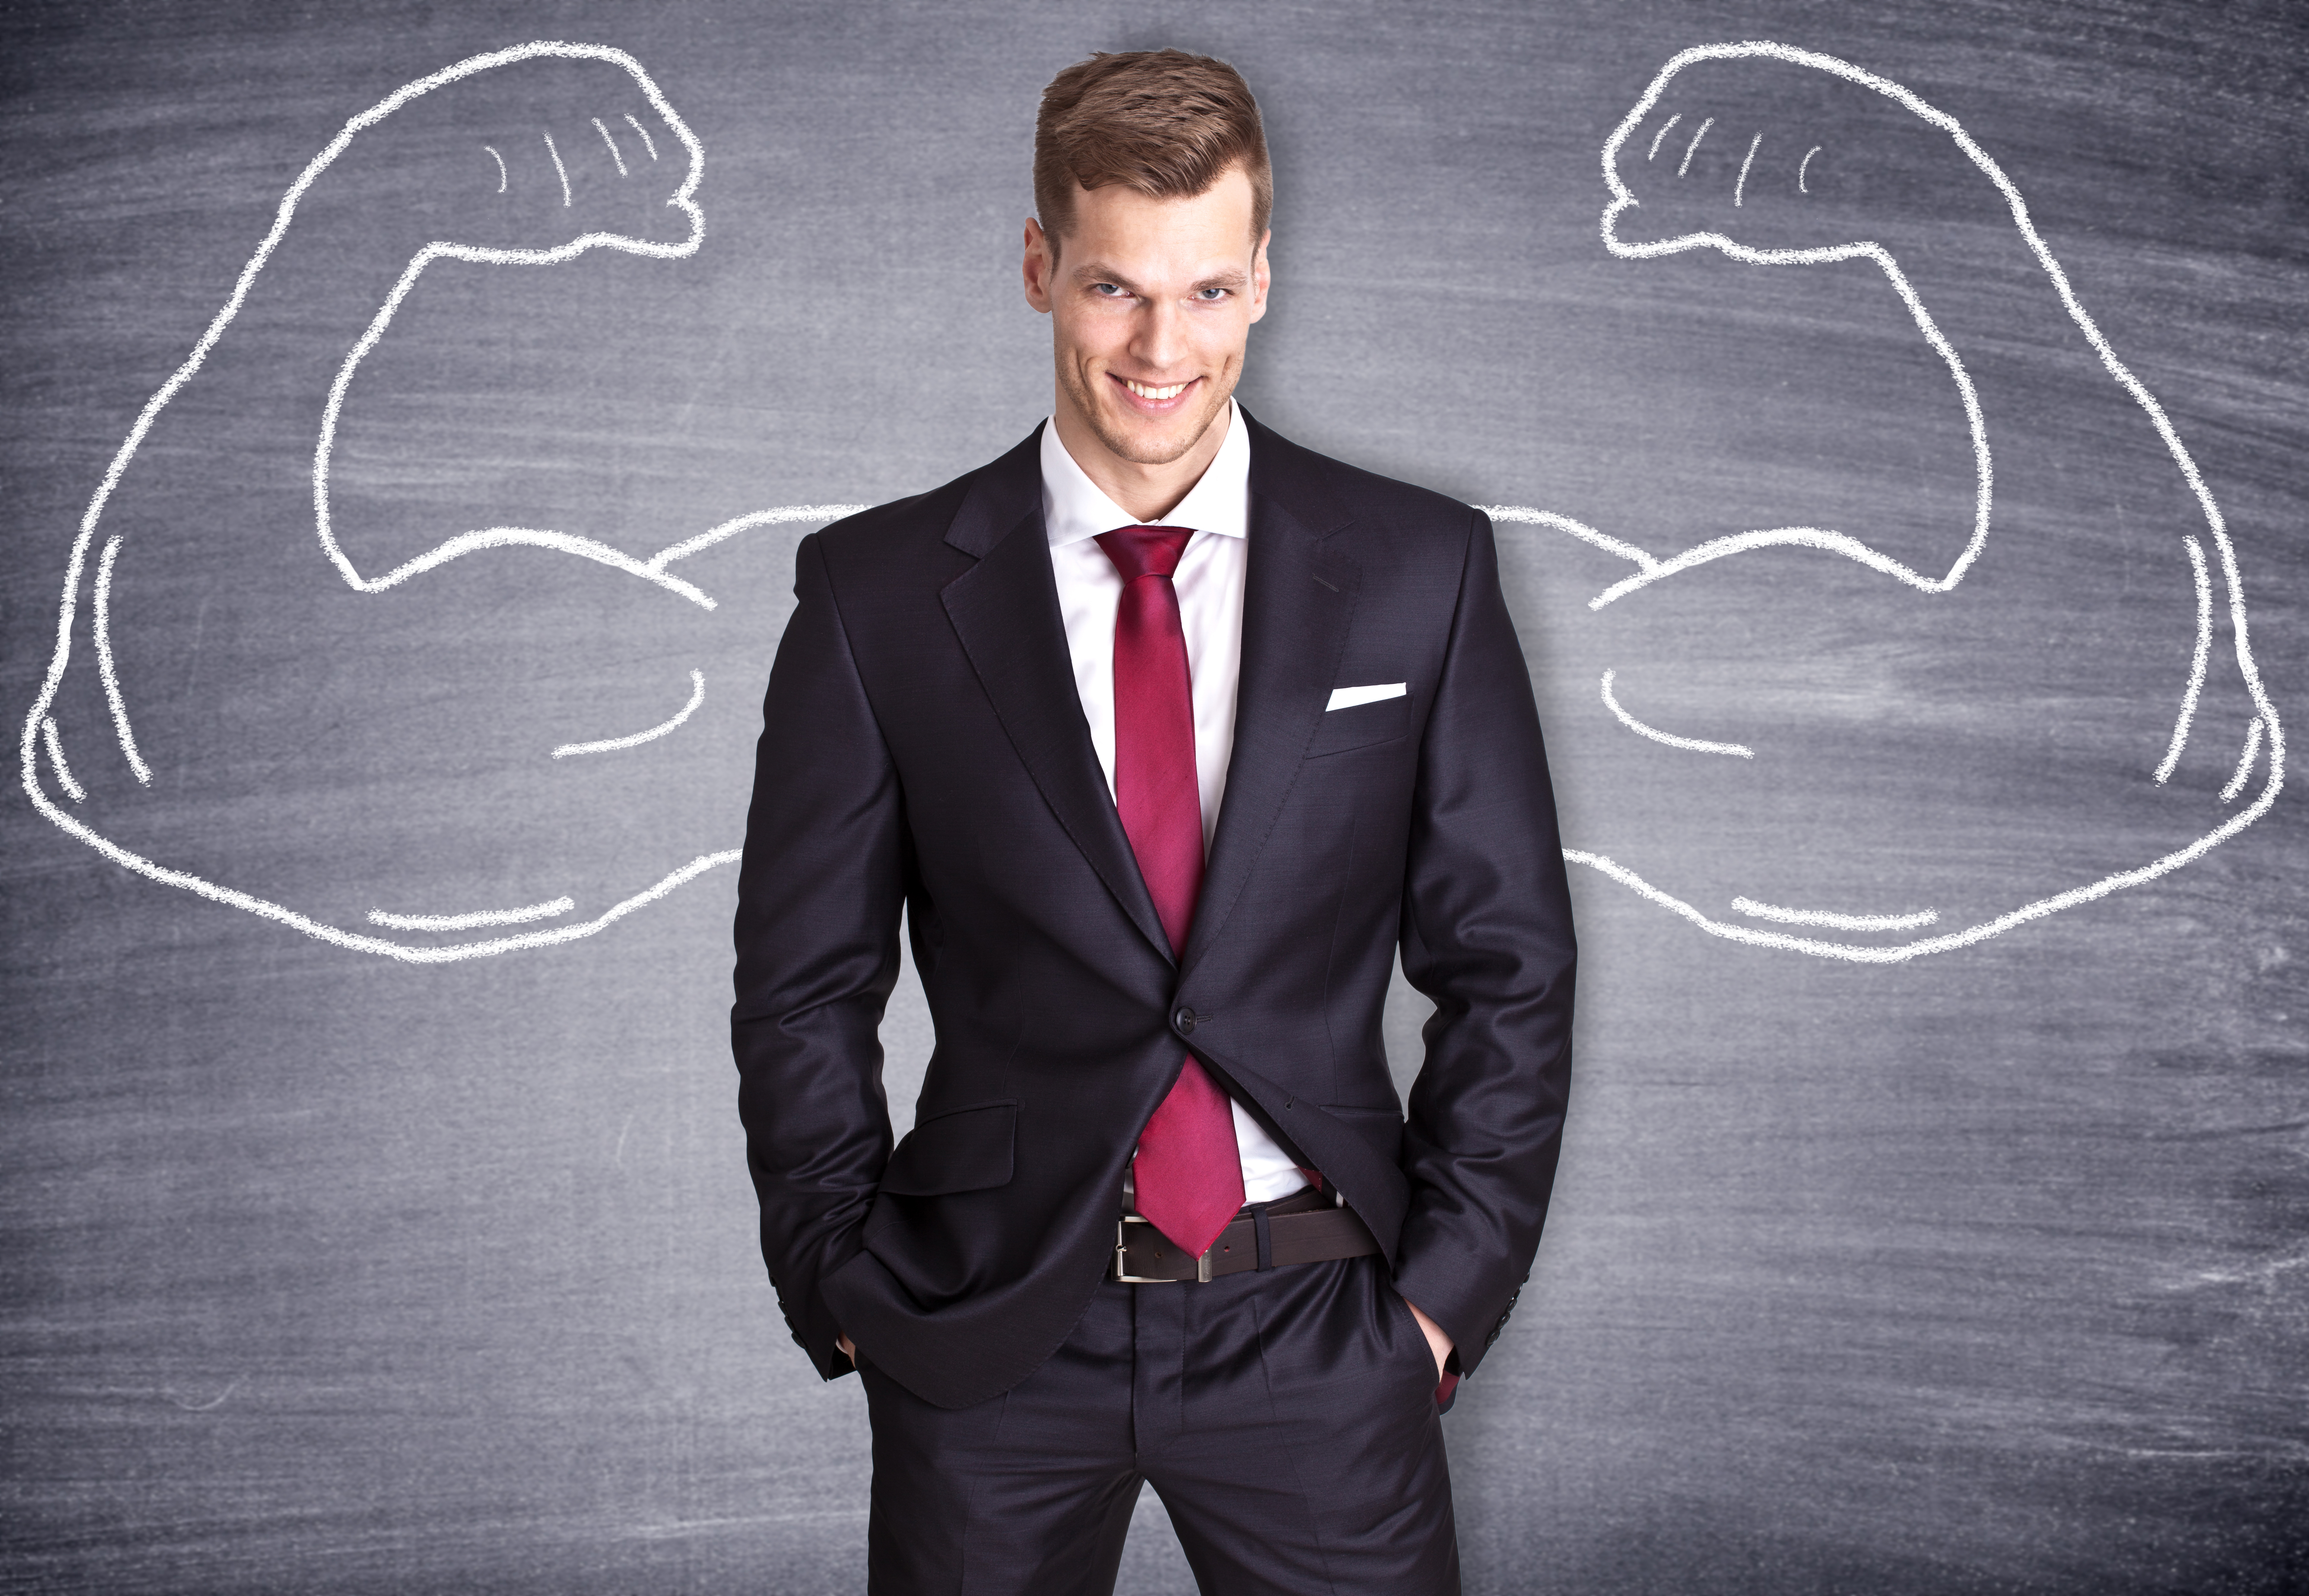 Image of business man with strong chalk arms drawn - demonstrate how to be confident and be successful in business